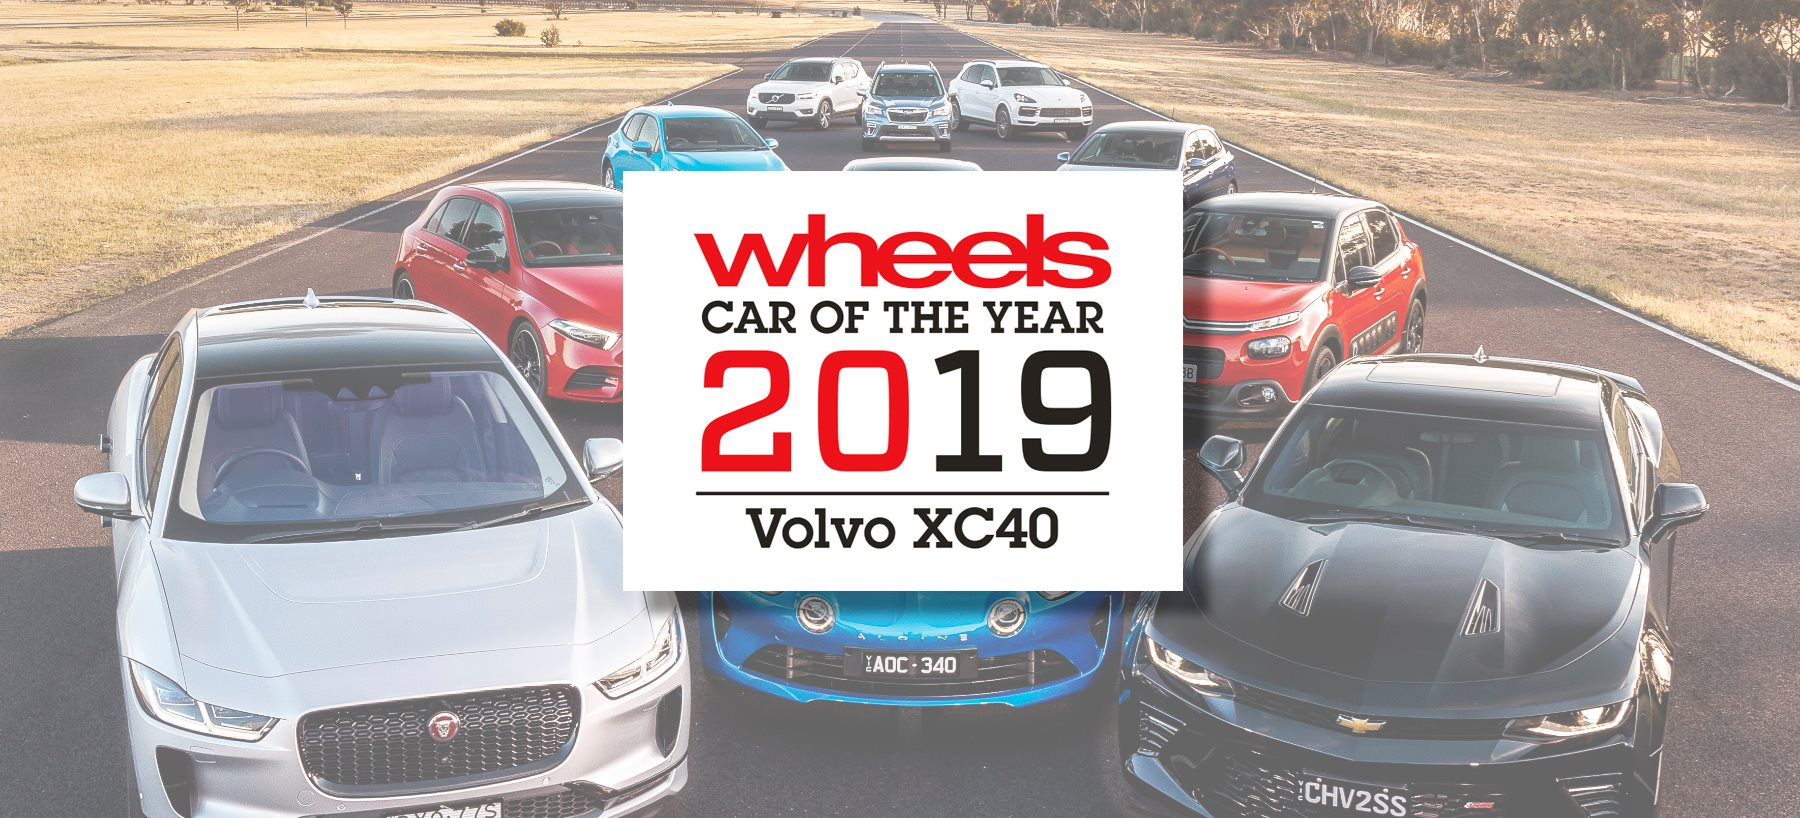 Wheels car of the year 2019